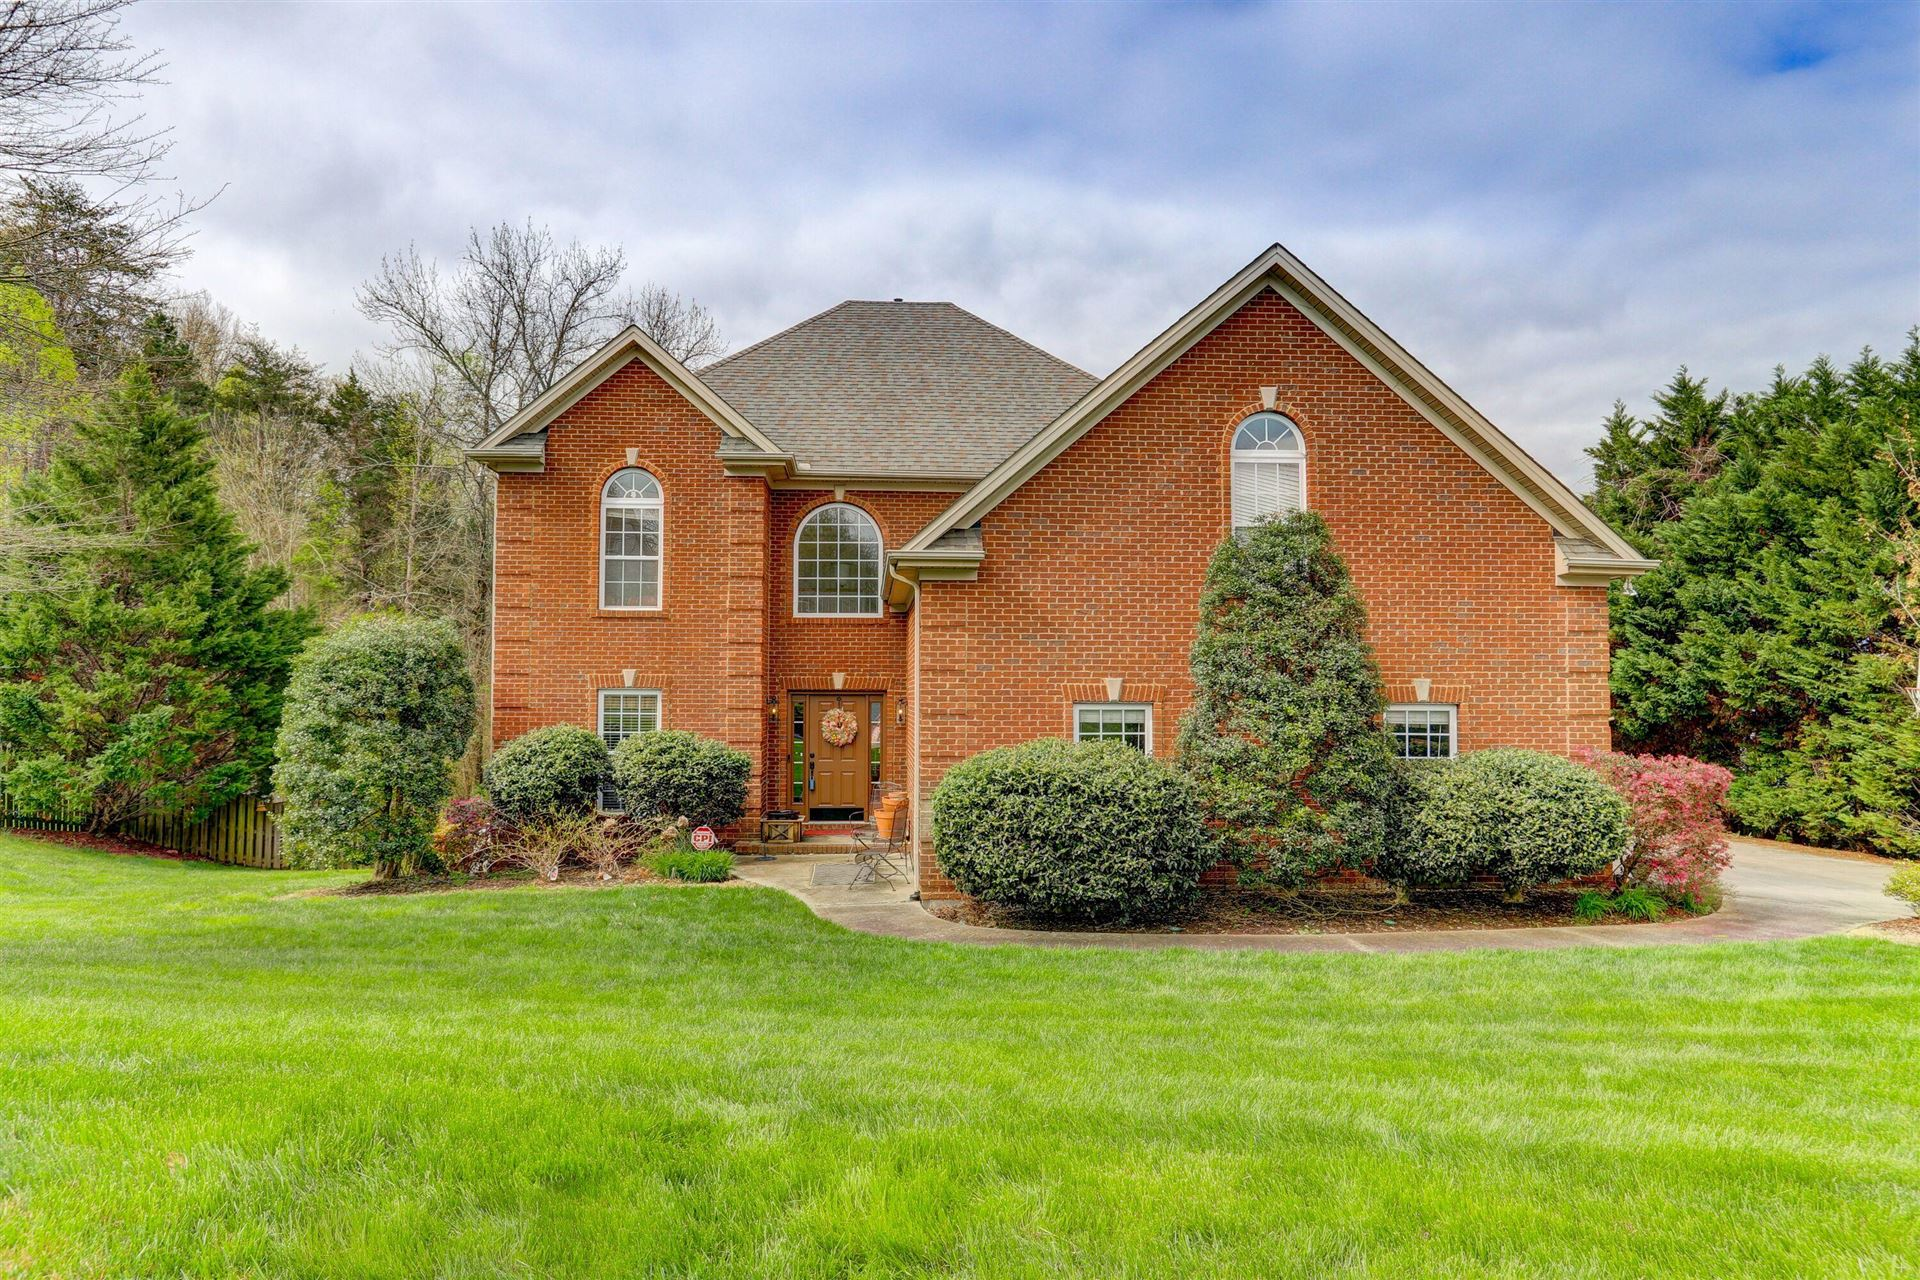 Photo of 2239 Berrywood Drive, Knoxville, TN 37932 (MLS # 1112523)